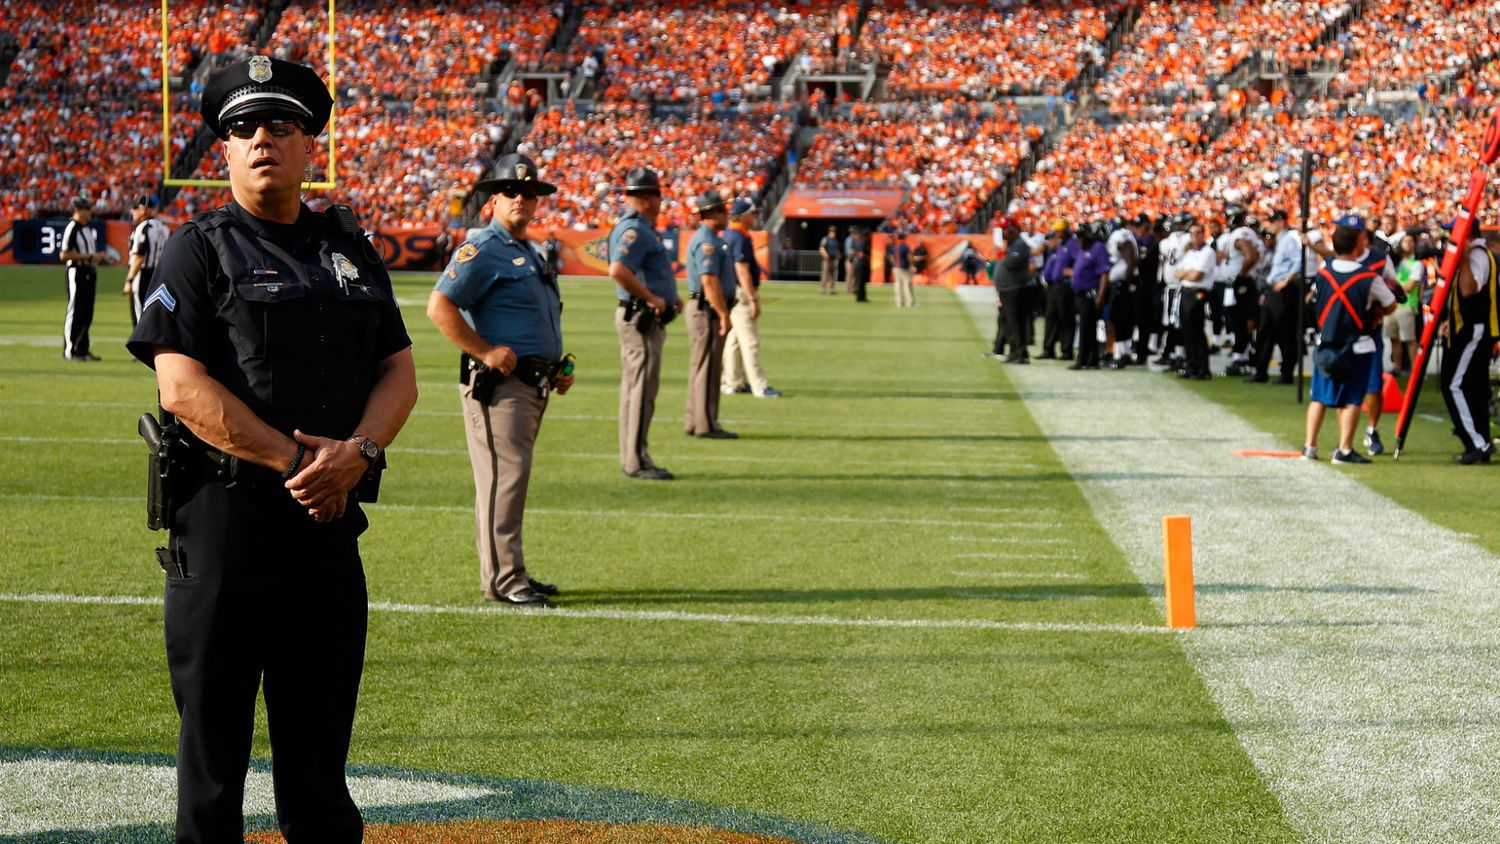 Stadium security and What are the benefits of CCTV cameras